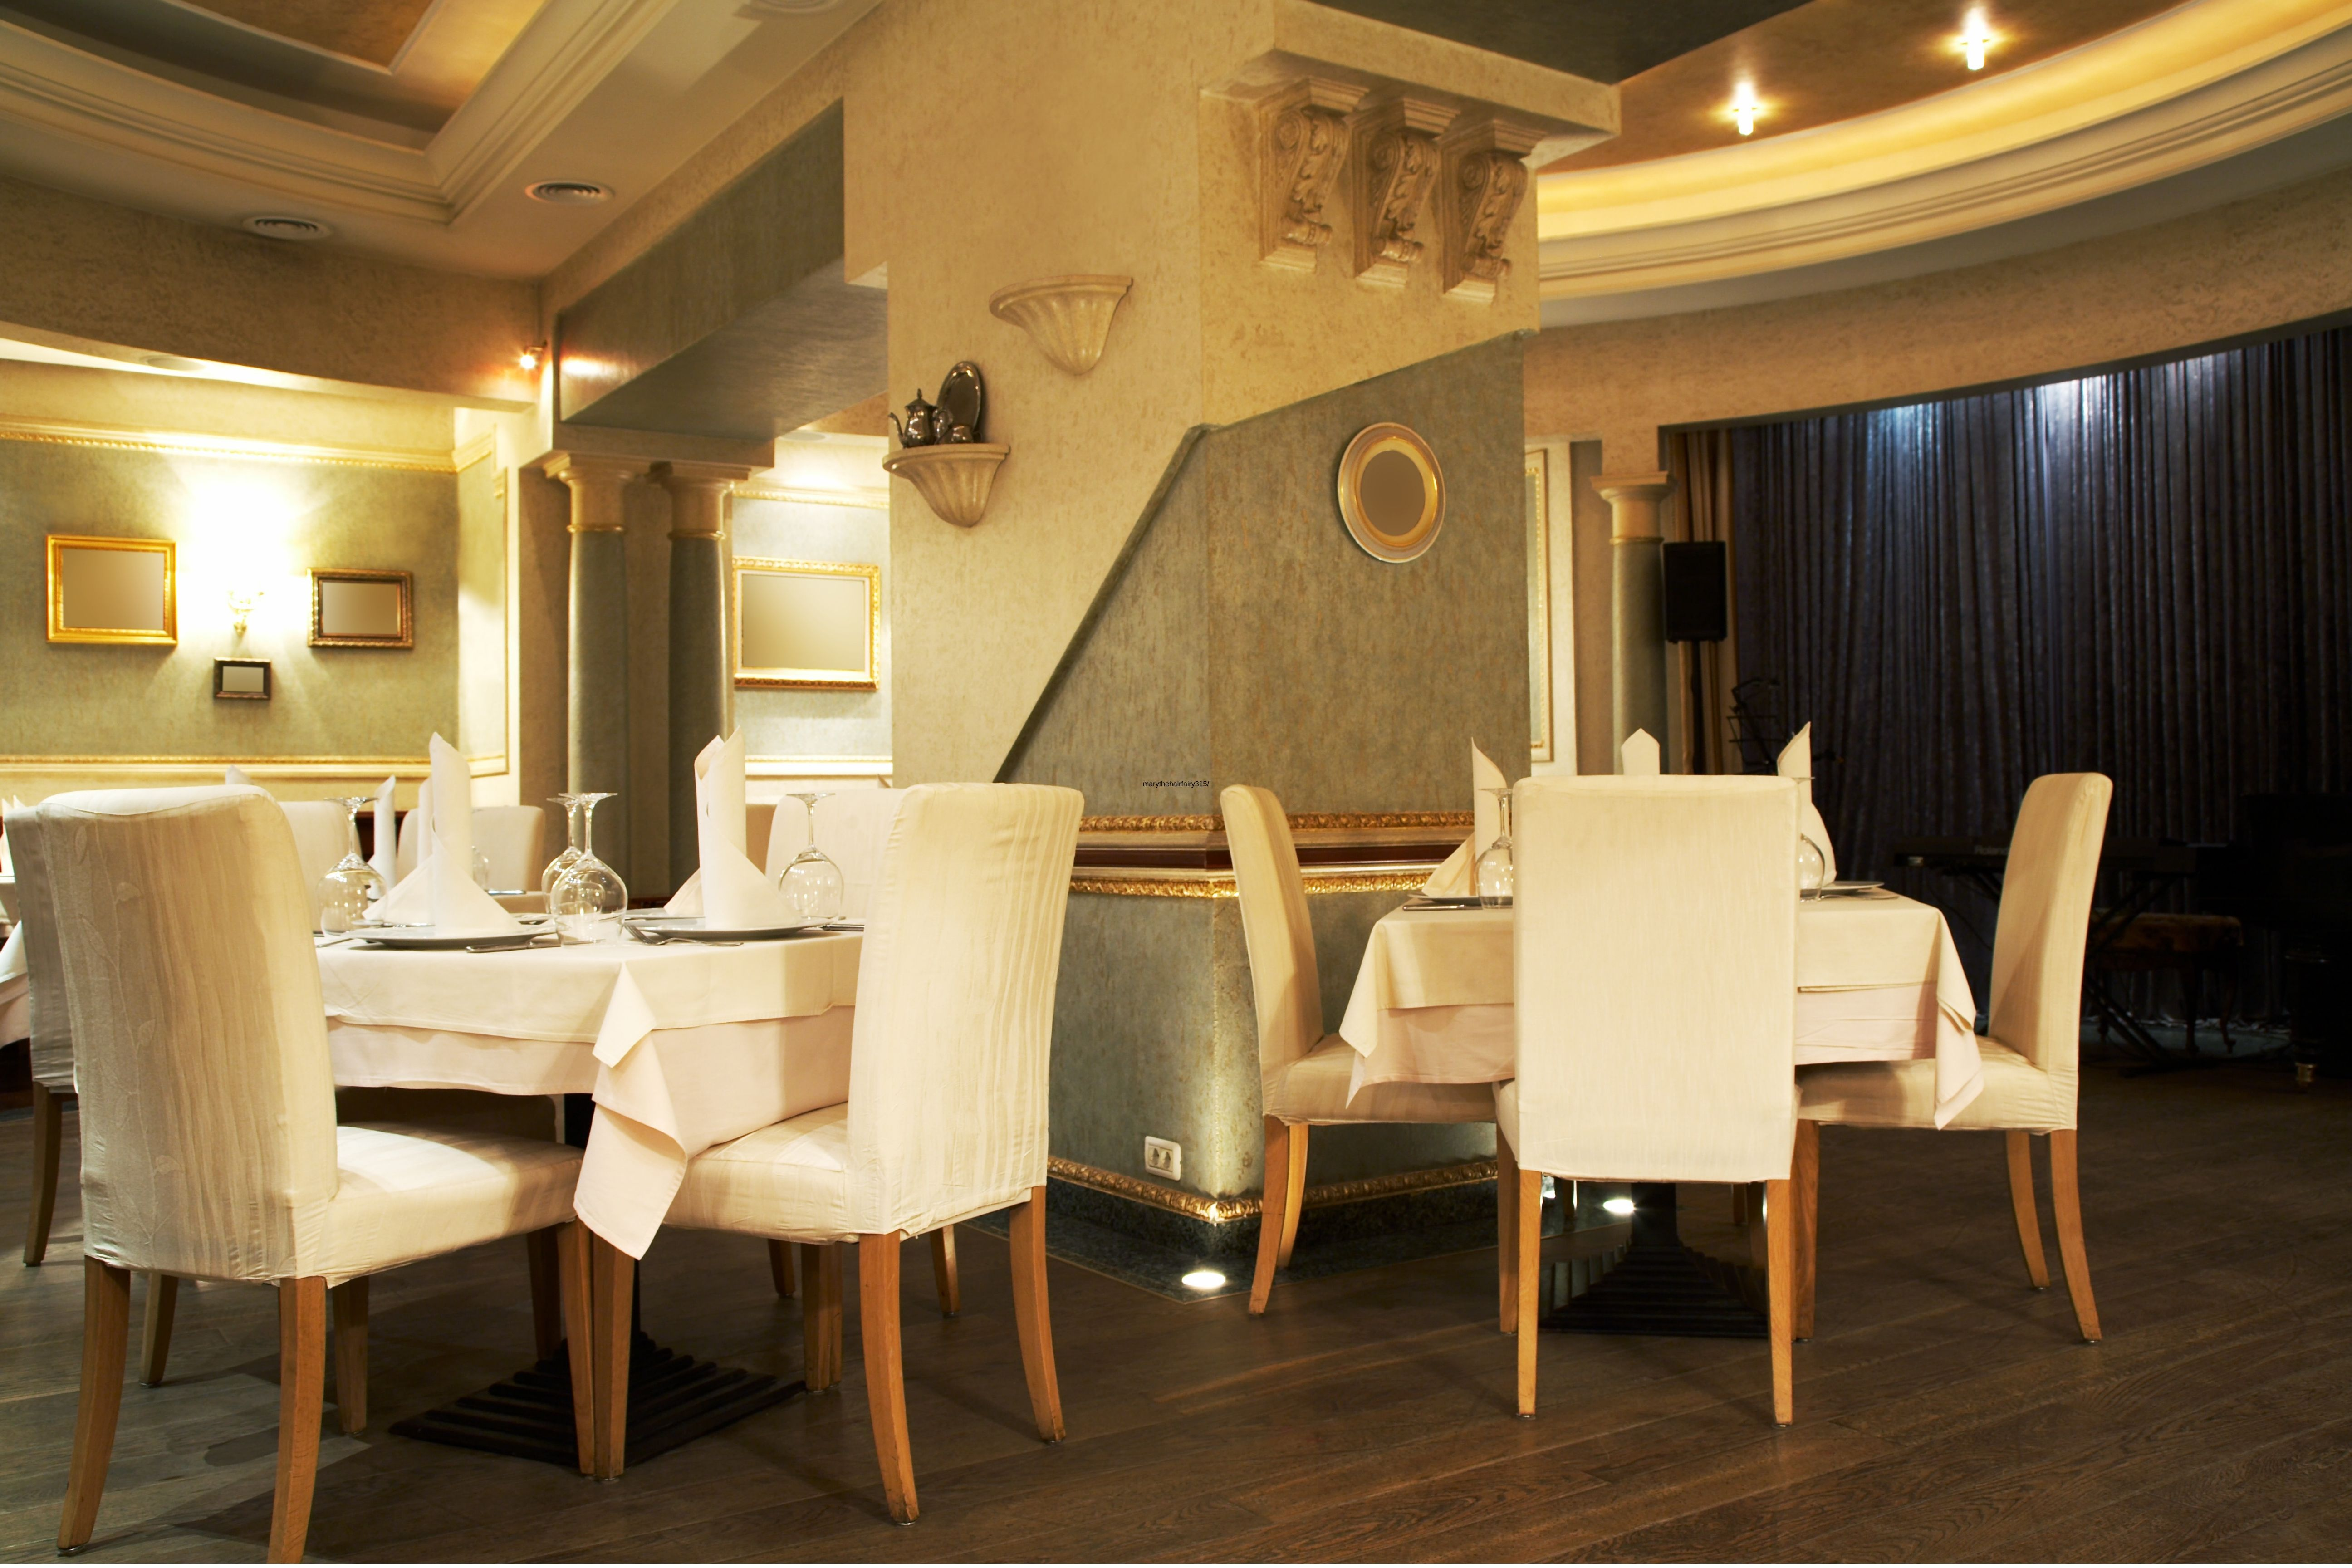 Factors to consider before choosing a restaurant chair